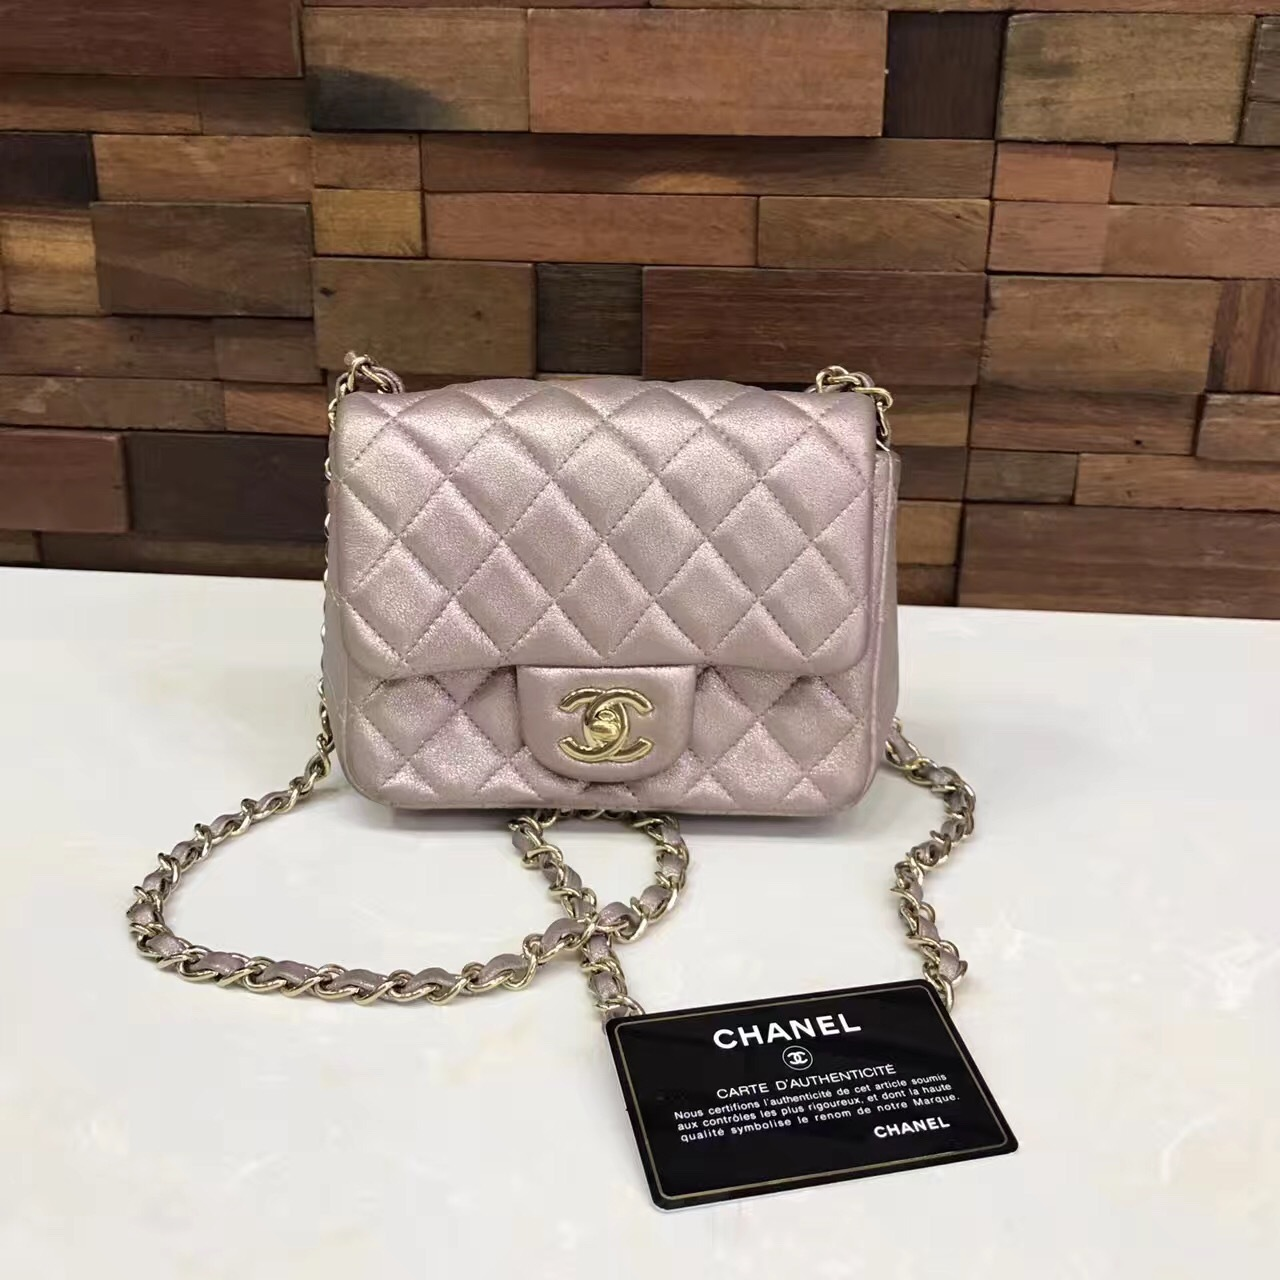 AUTHENTIC CHANEL PEARLY IRIDESCENT PINK QUILTED SQUARE MINI FLAP BAG LIGHT GHW